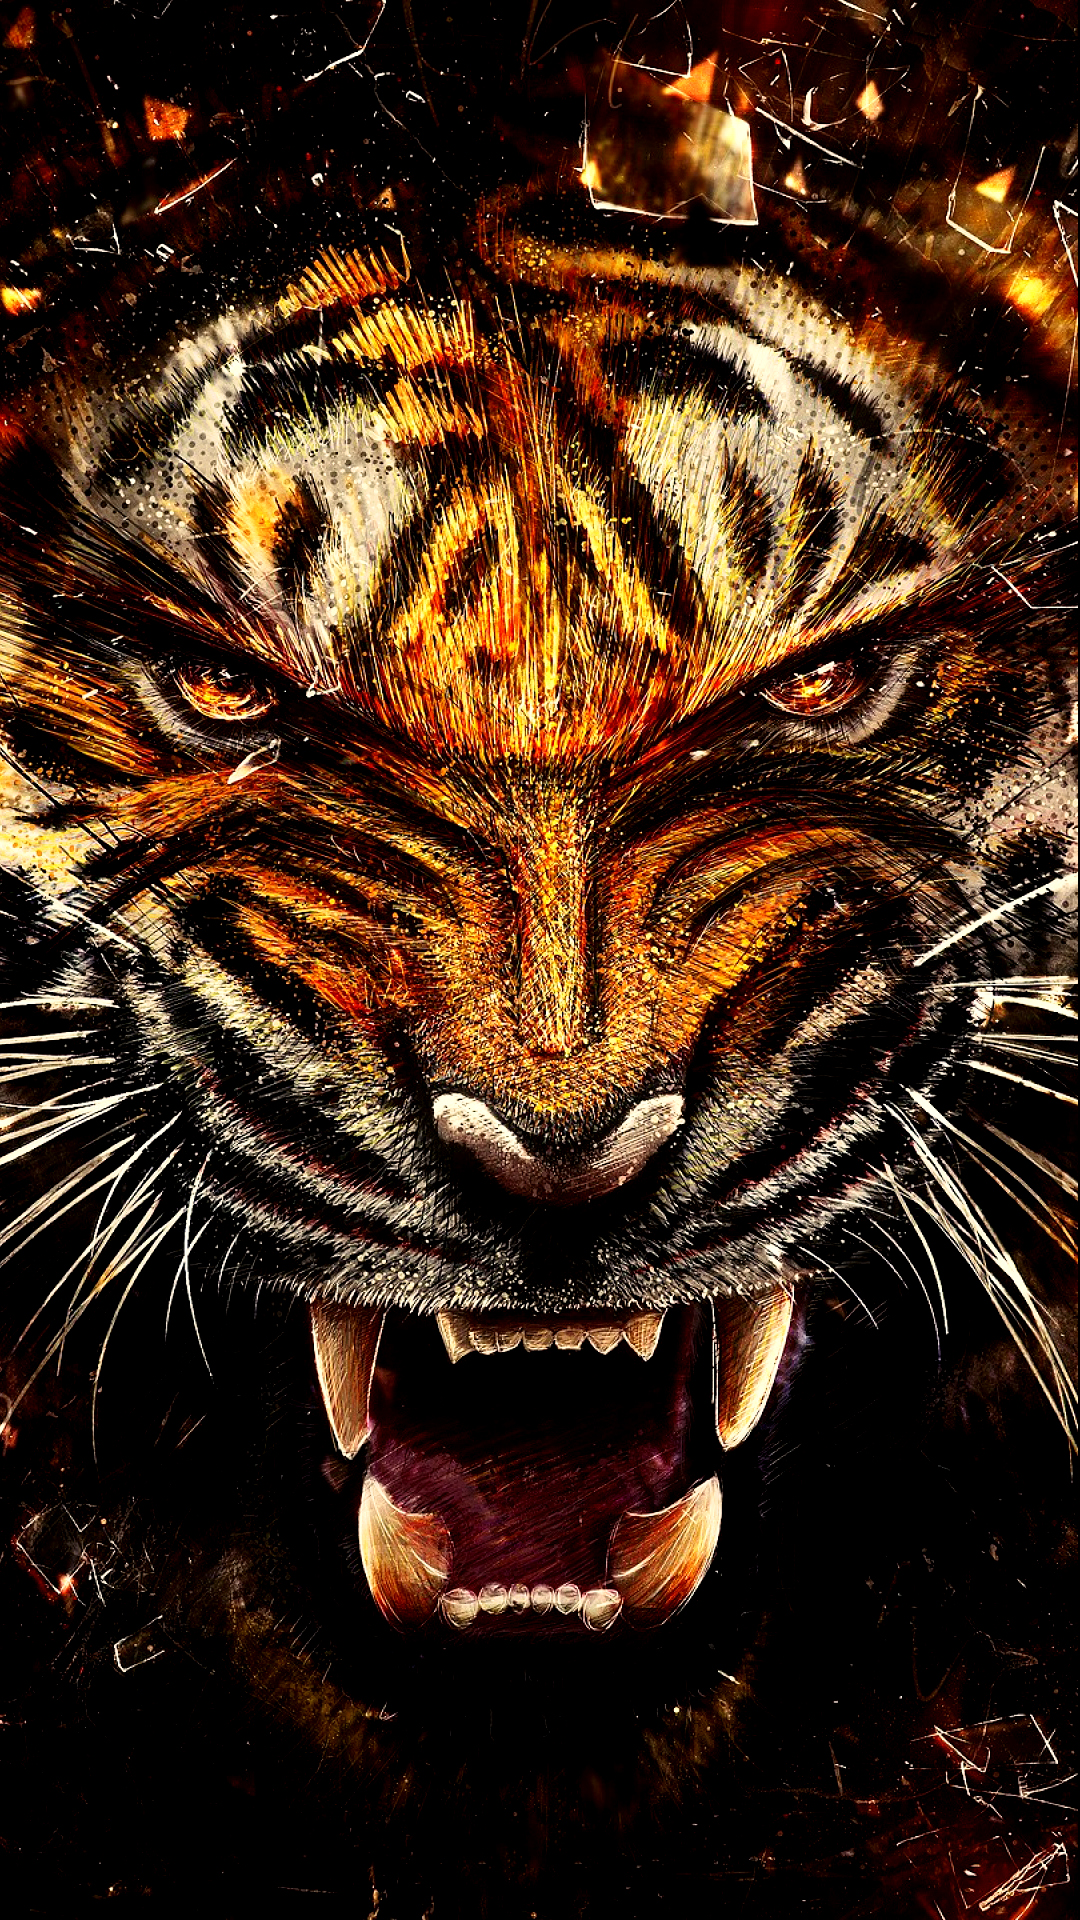 Wild Tiger HD Wallpaper For Your Mobile Phone